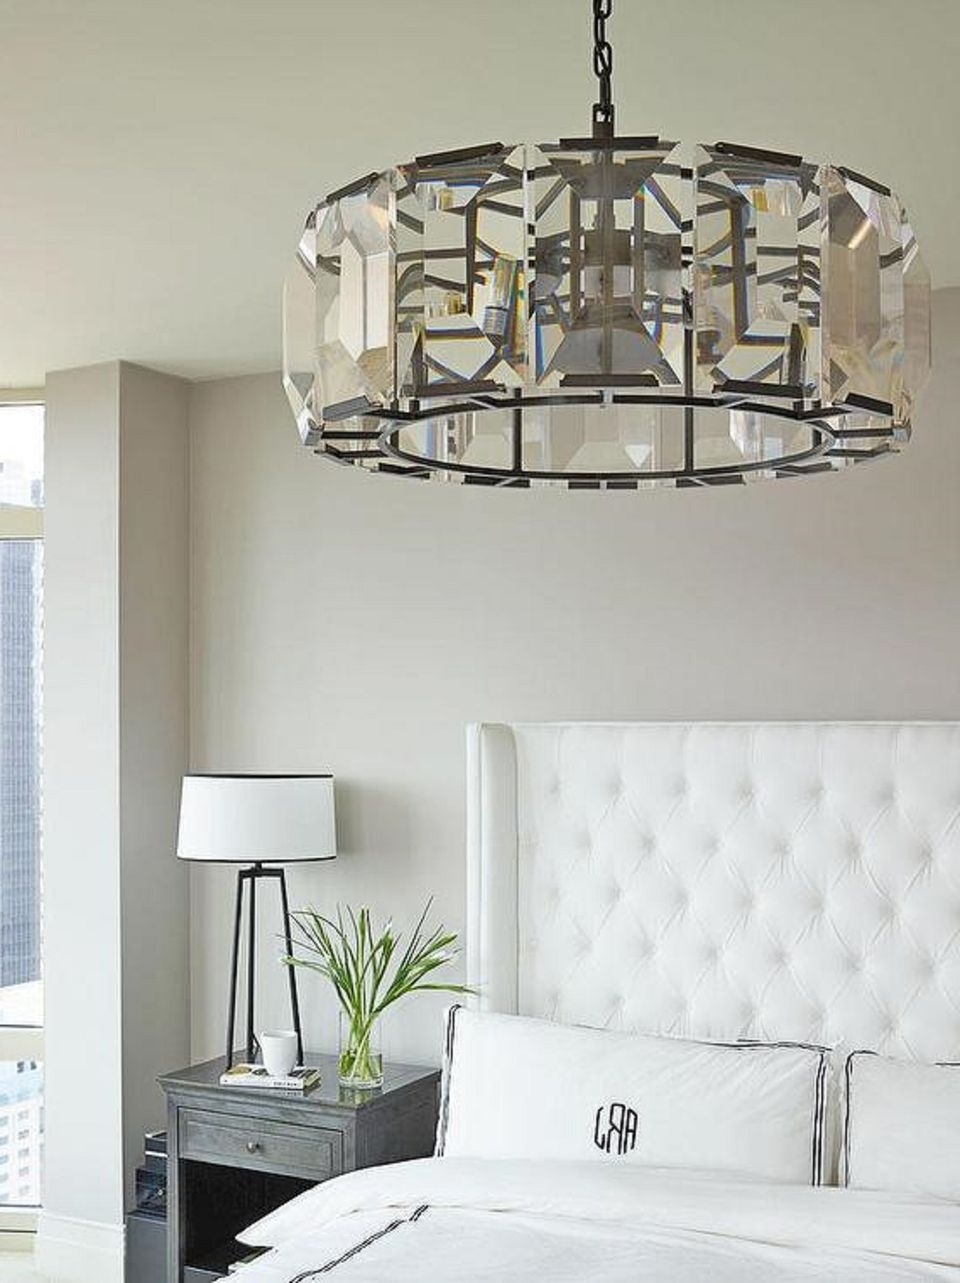 Light Fixture : Chandeliers For Girls Bedroom Ceiling Lights For In 2017 Chandelier Night Stand Lamps (View 7 of 15)